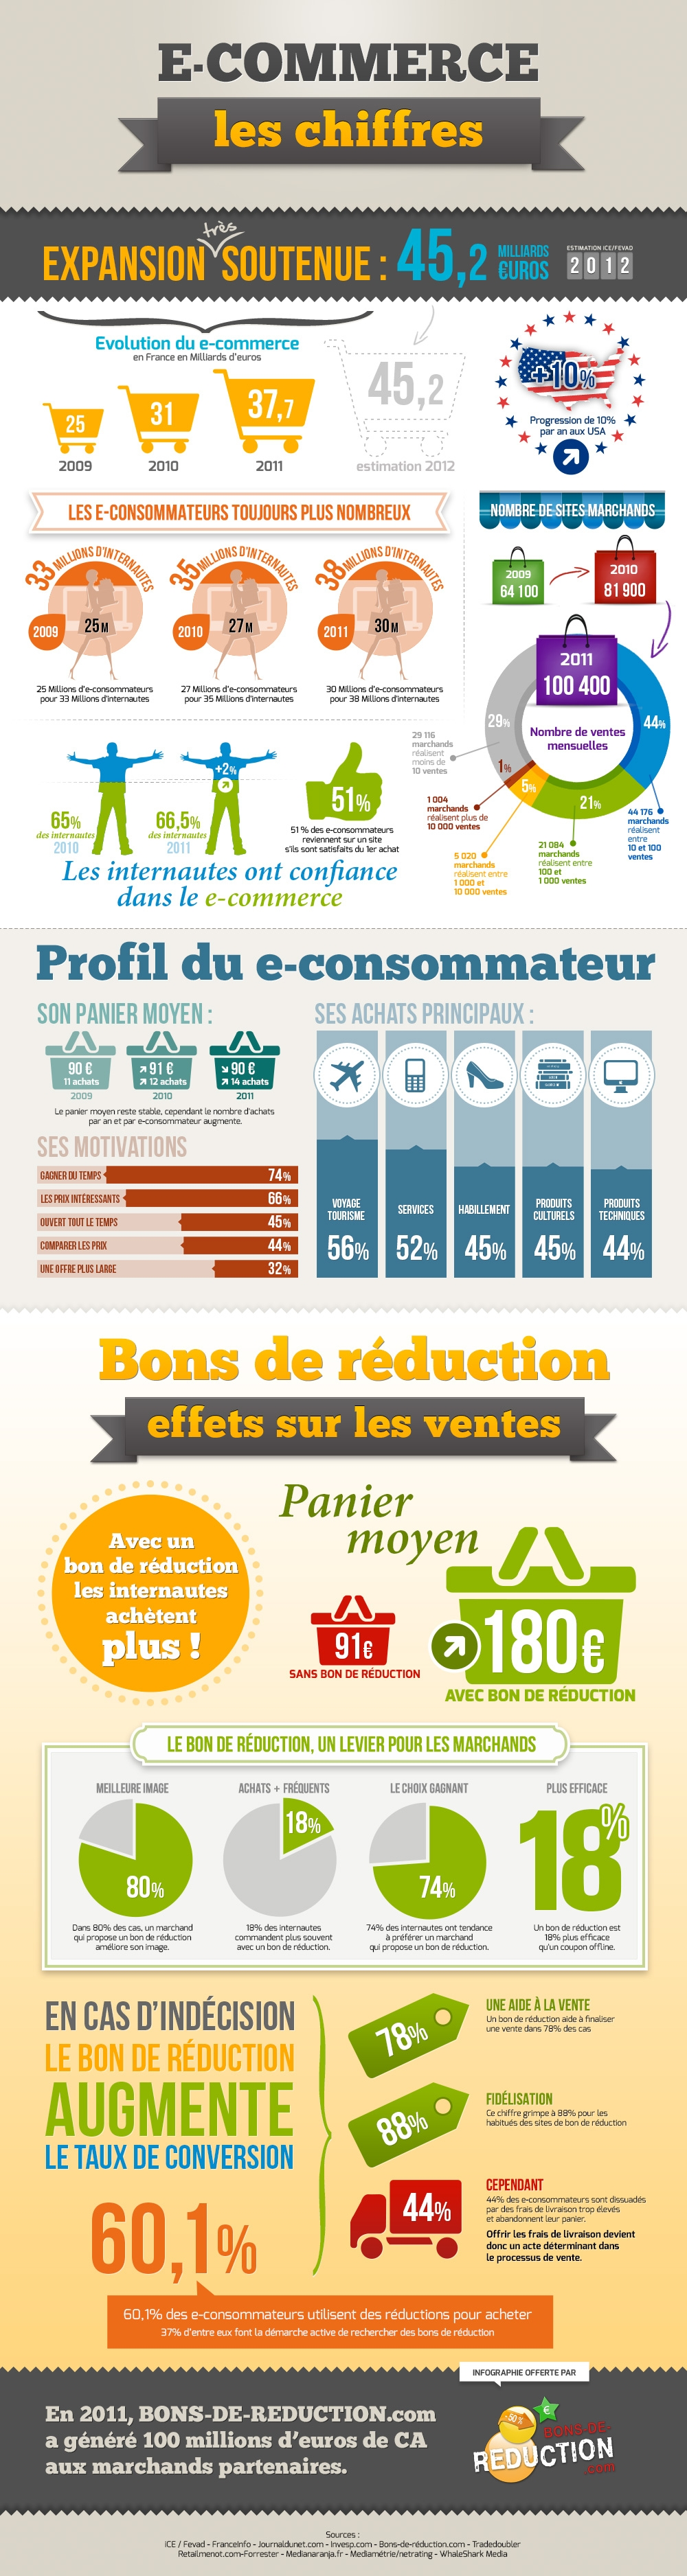 Infographie e-commerce